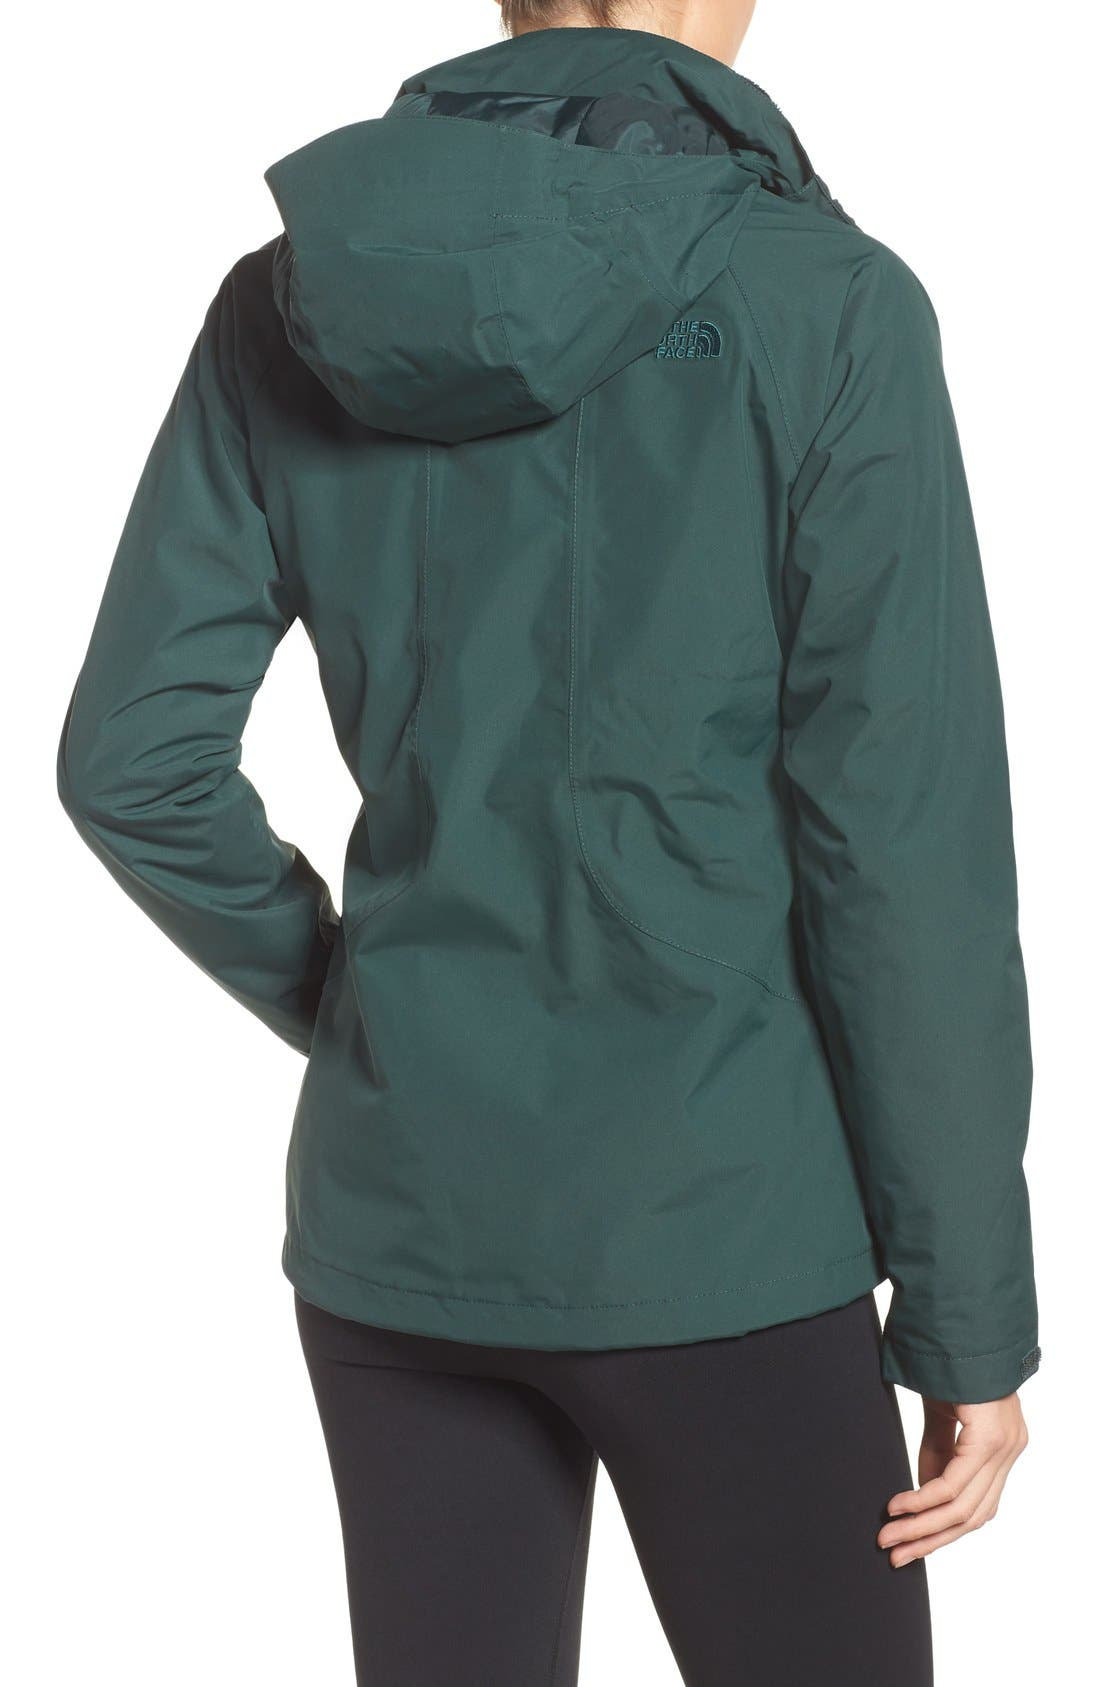 Boundary Triclimate<sup>®</sup> 3-in-1 Jacket,                             Alternate thumbnail 16, color,